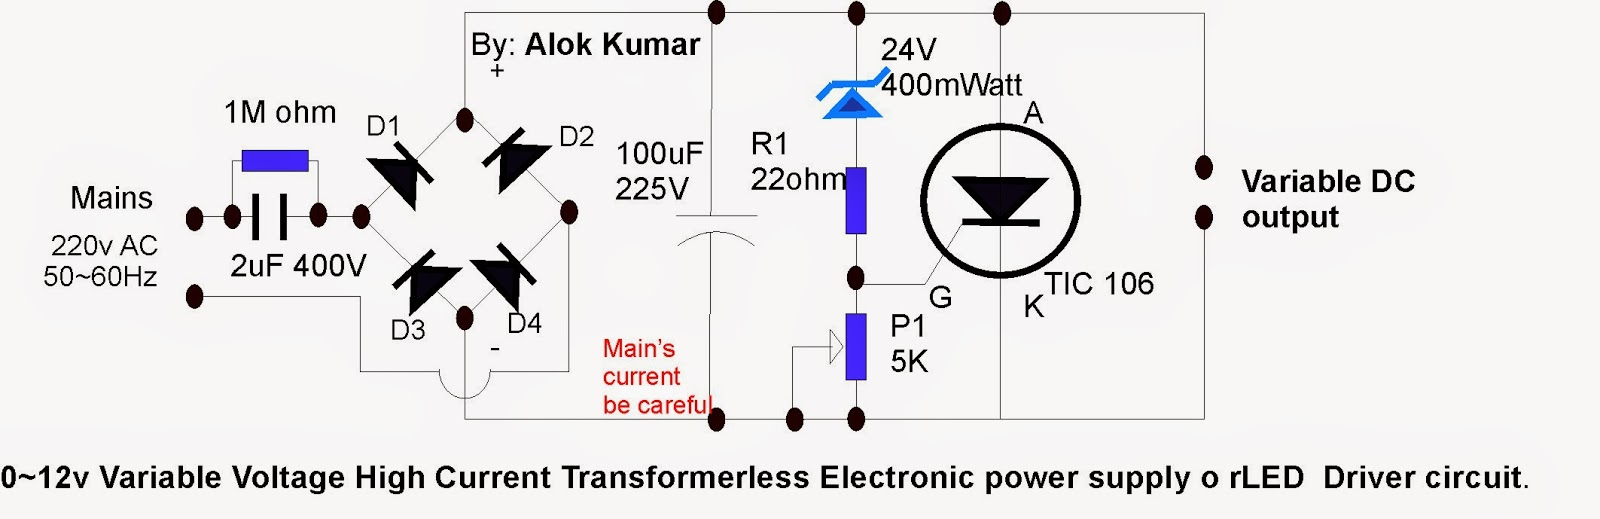 electronic circuits transformerless power supply led drivers circuit diagram